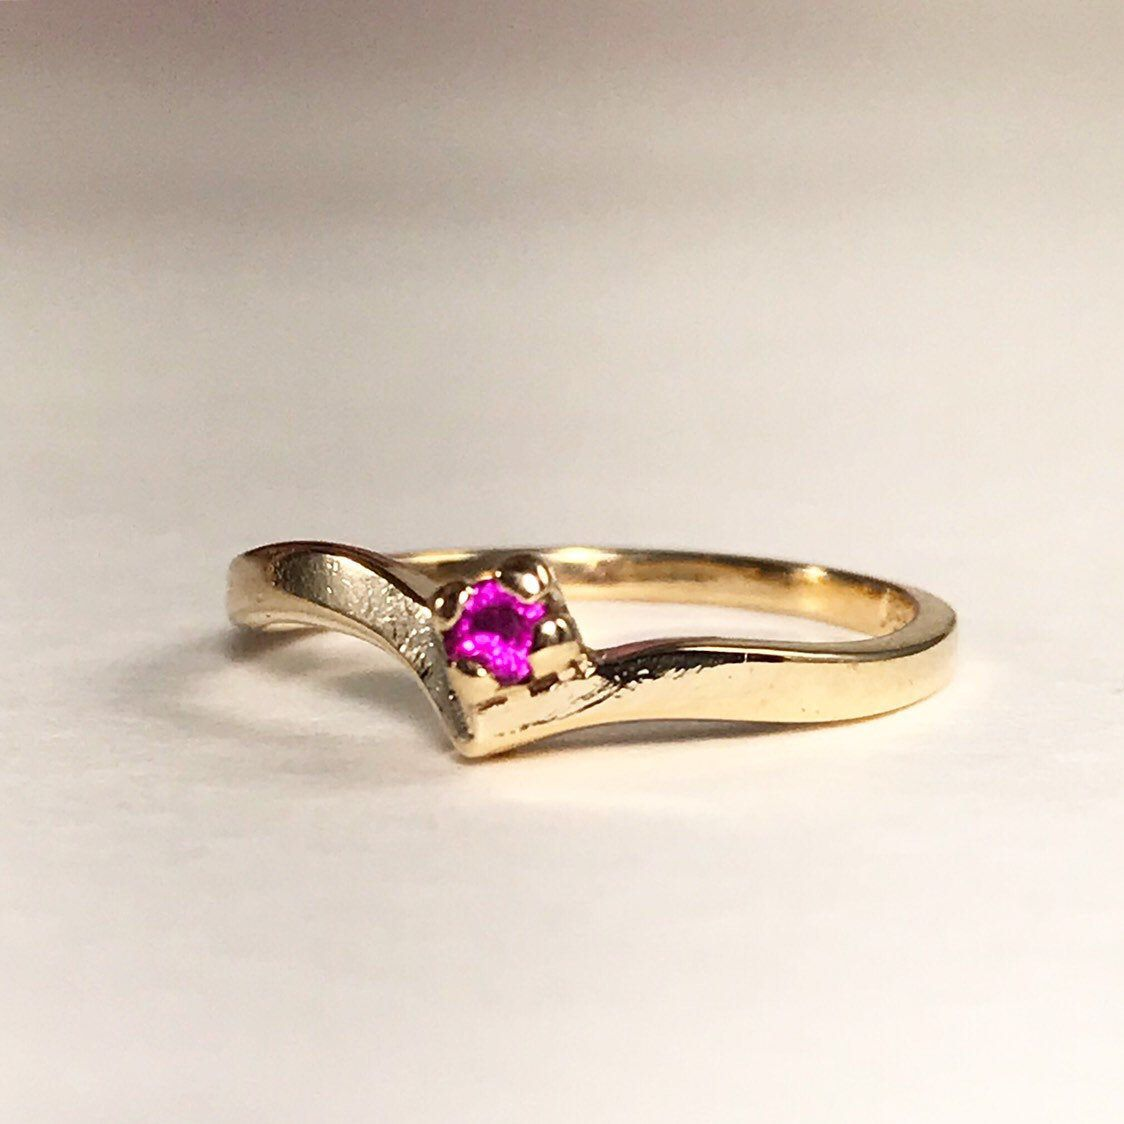 Vintage Chevron Ruby Ring 10k Yellow Gold Ruby Ring Size Etsy In 2020 Ruby Ring Gold Ruby Ring Filigree Ring Gold